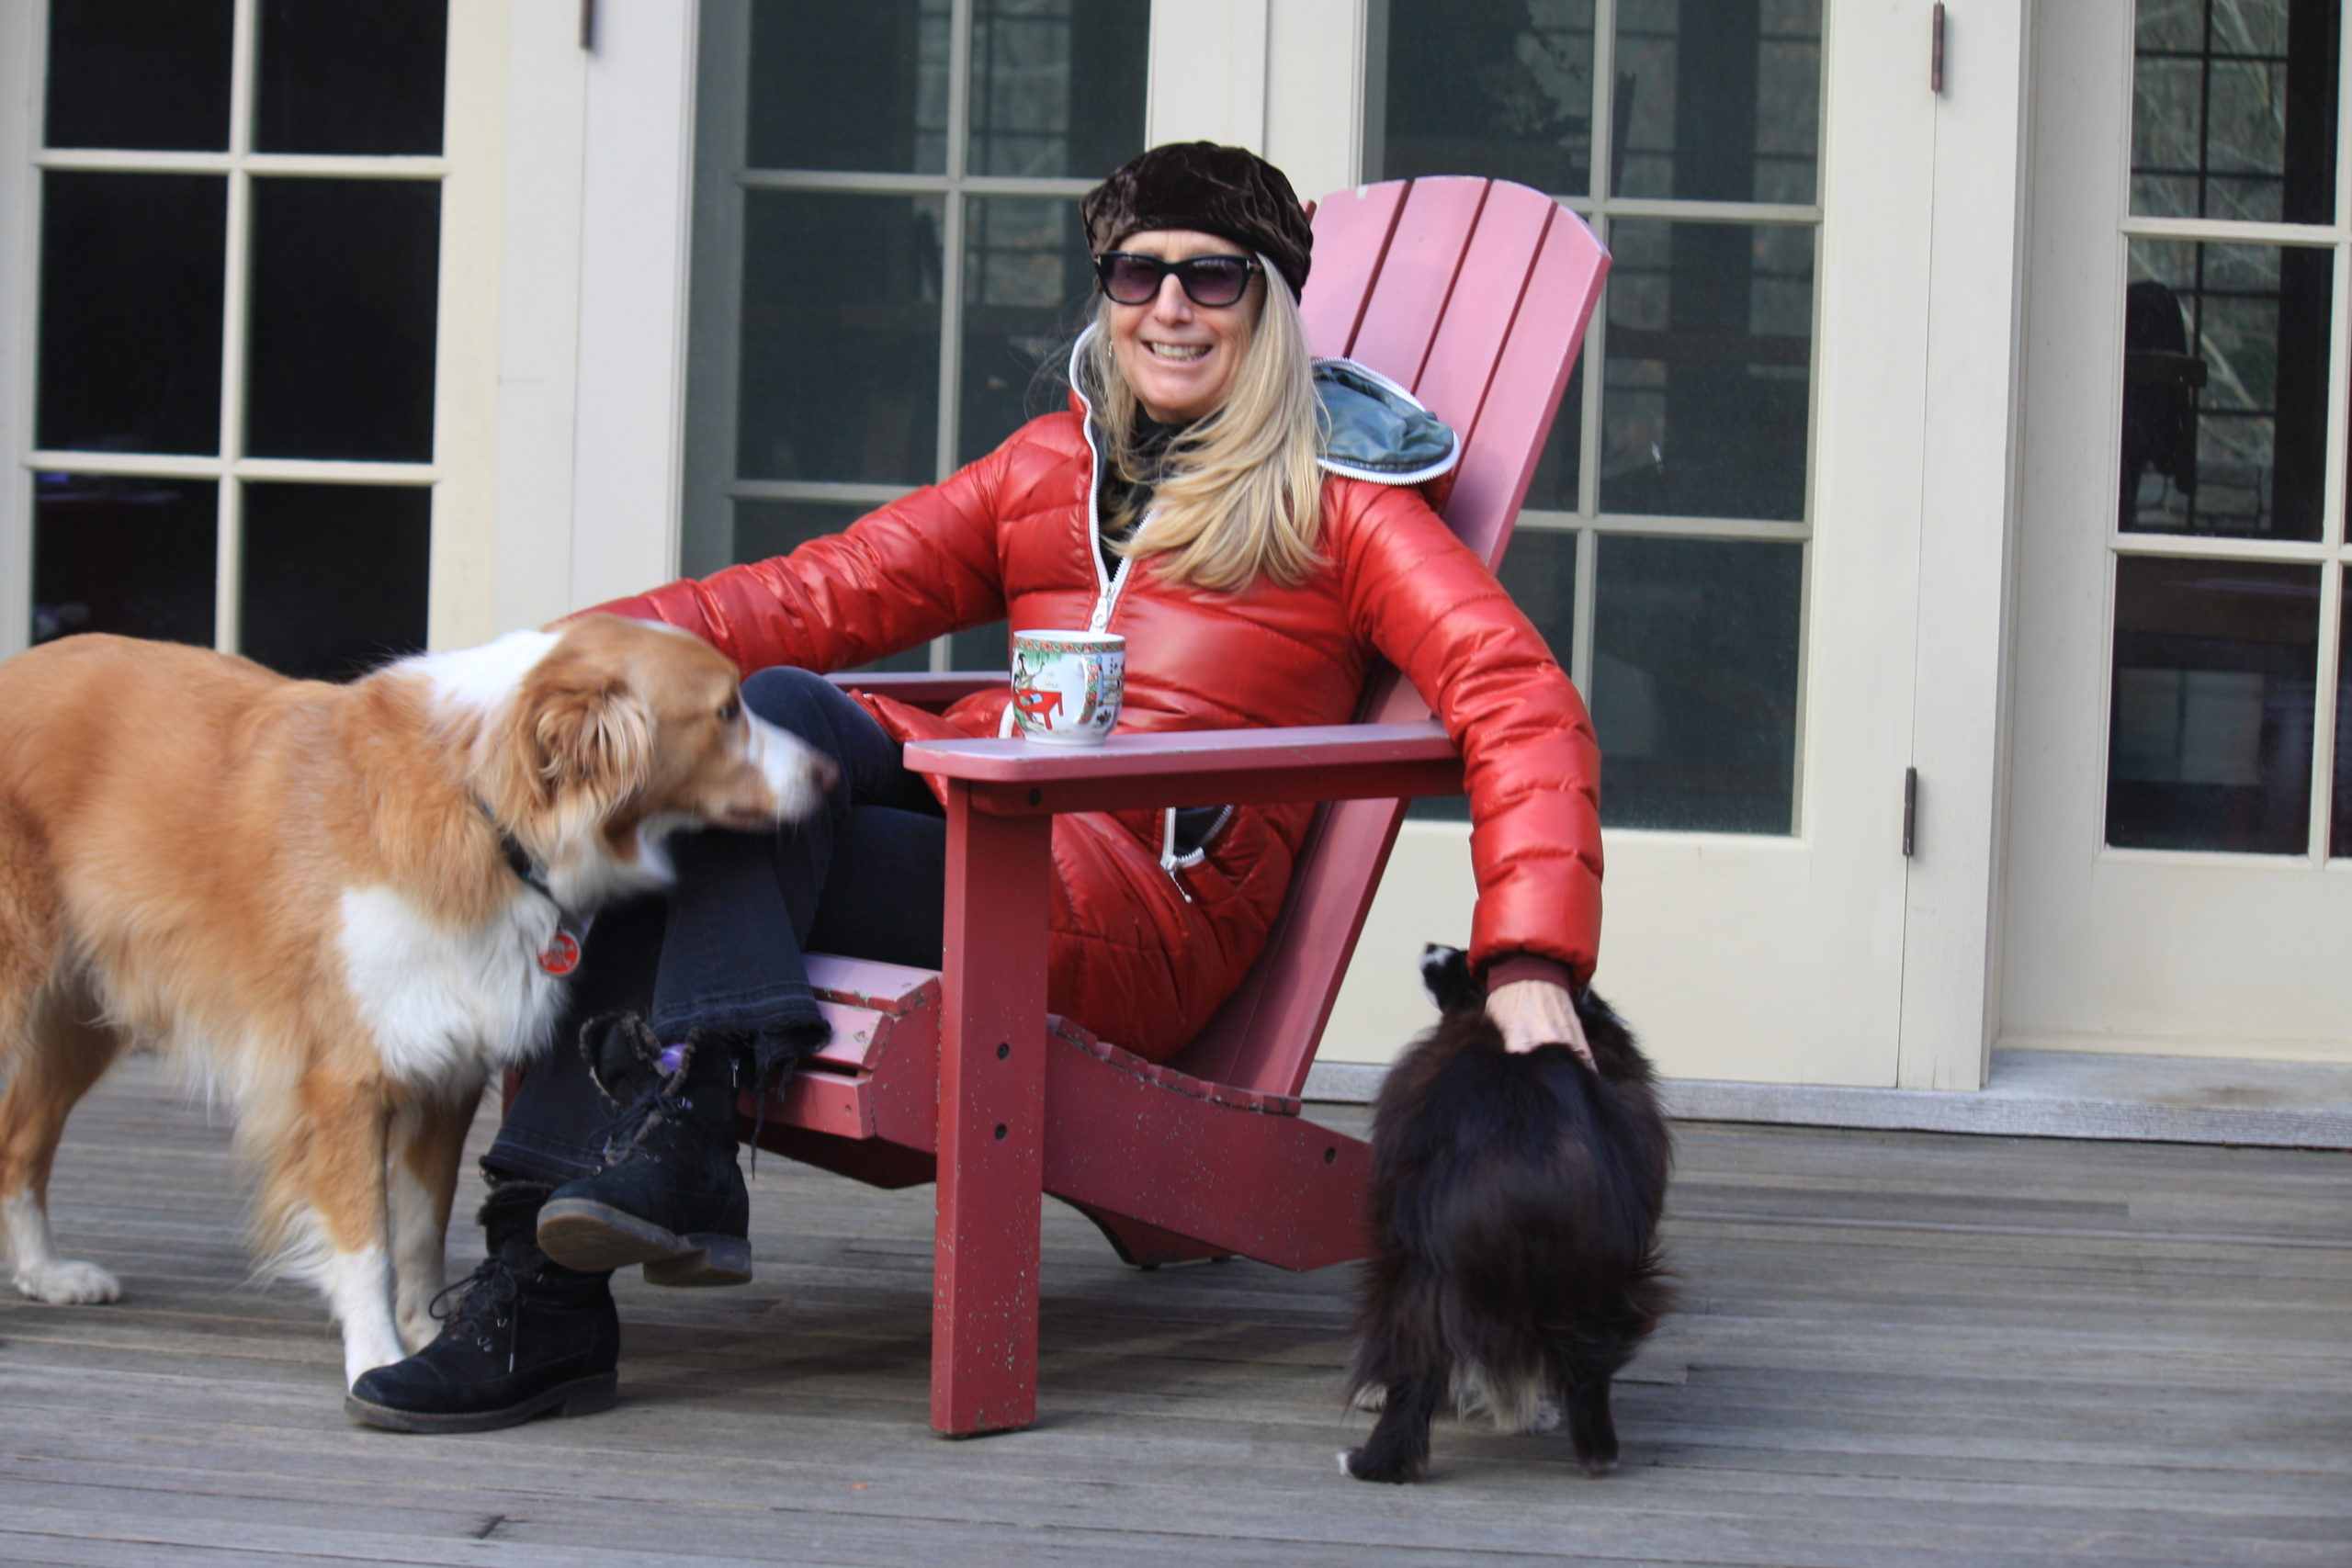 Taylor Barton at home with her dogs.